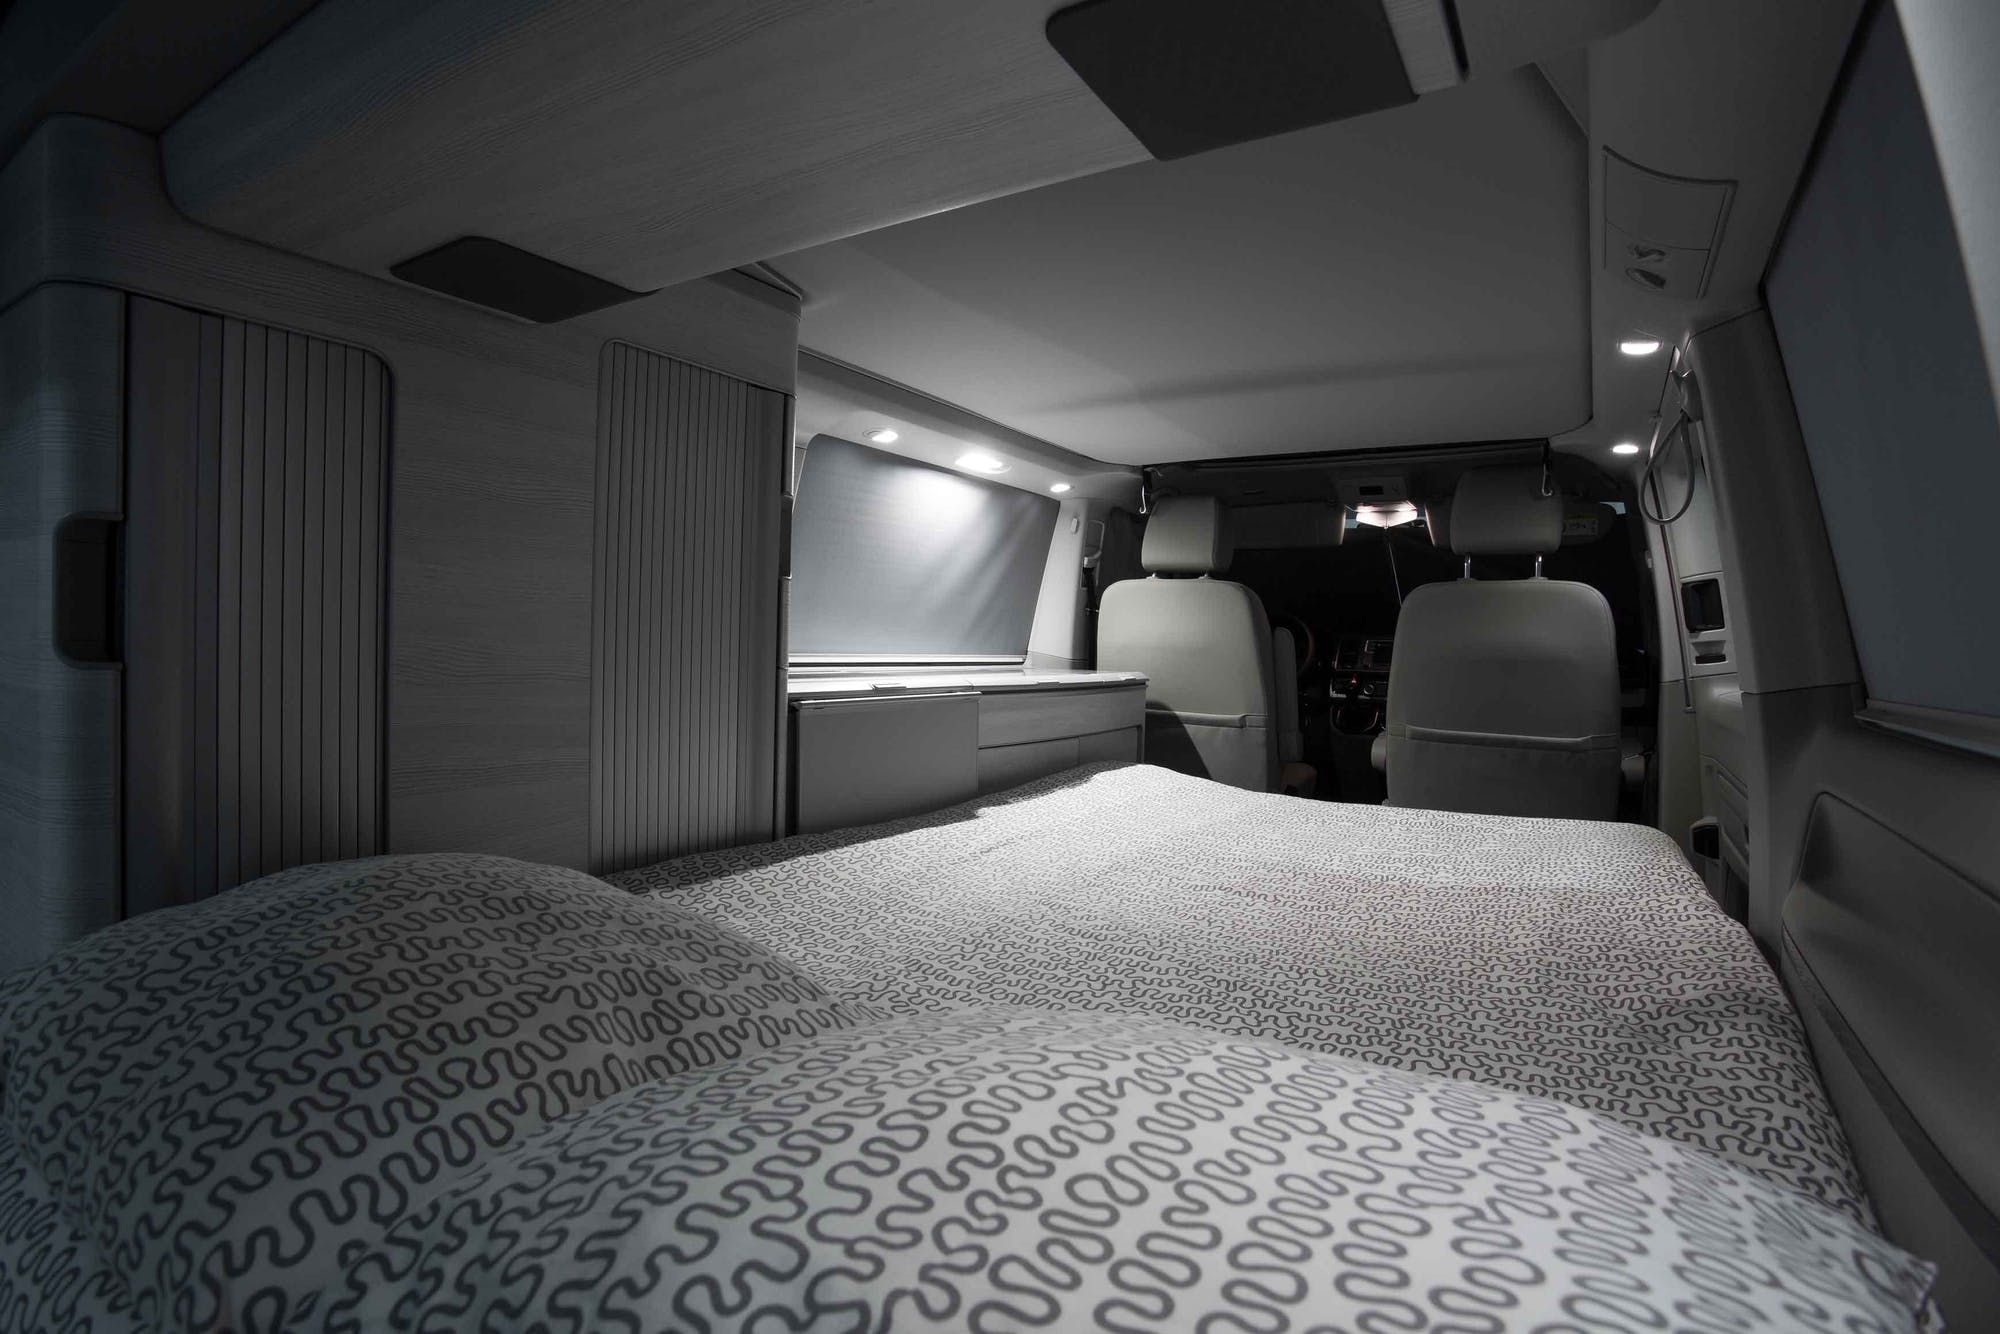 Double bed's view inside the VW California Model